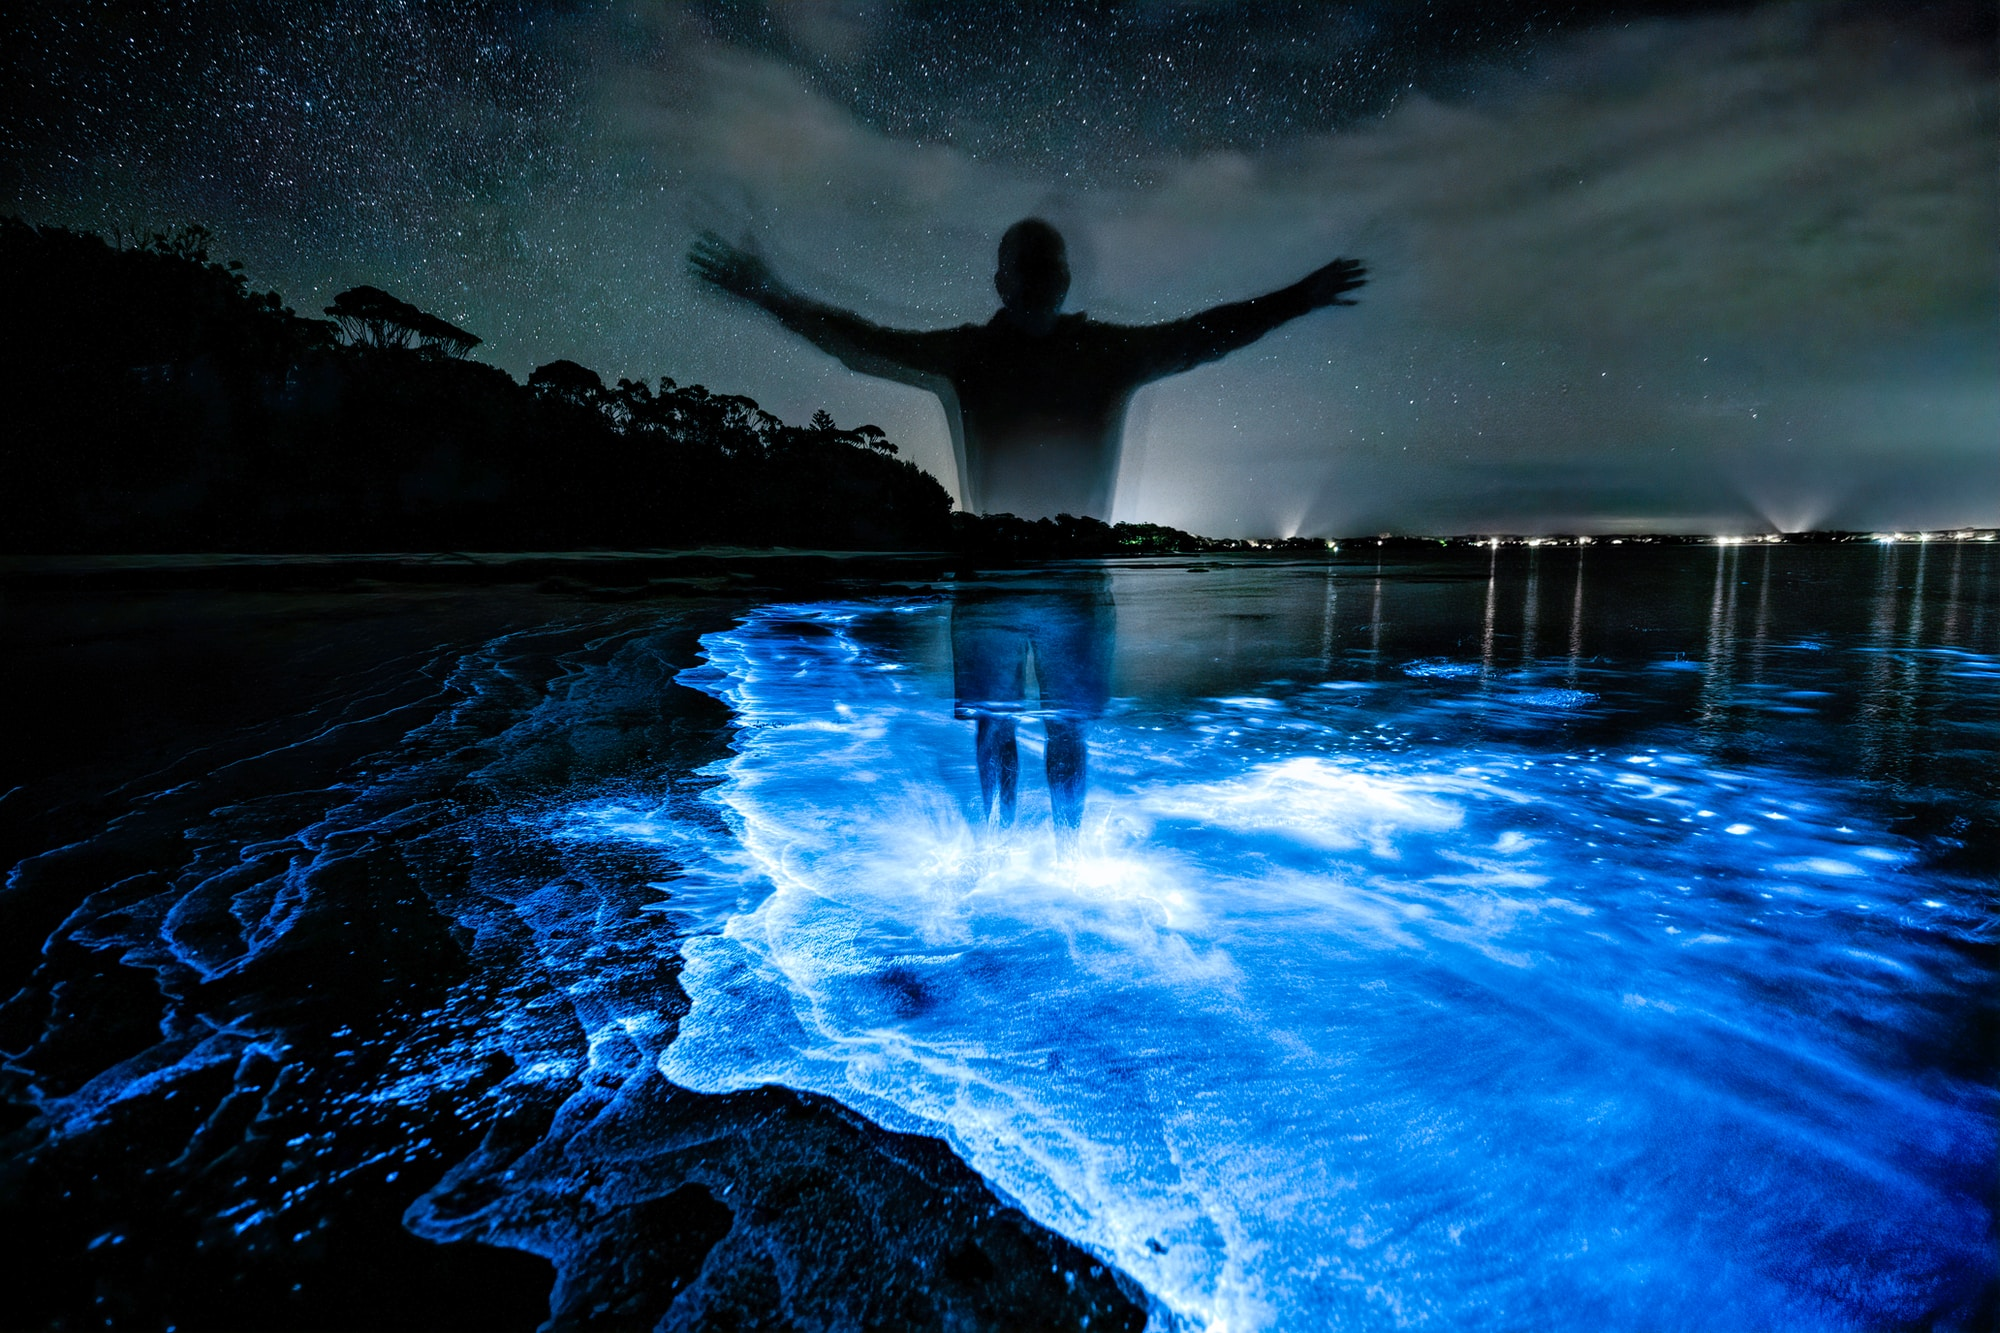 Jervis Bay Bioluminescence Bioluminescence is the production and emission of light by a living organism, in this case algae that when disturbed glows blue. This occurs at various but limited locations around the world.